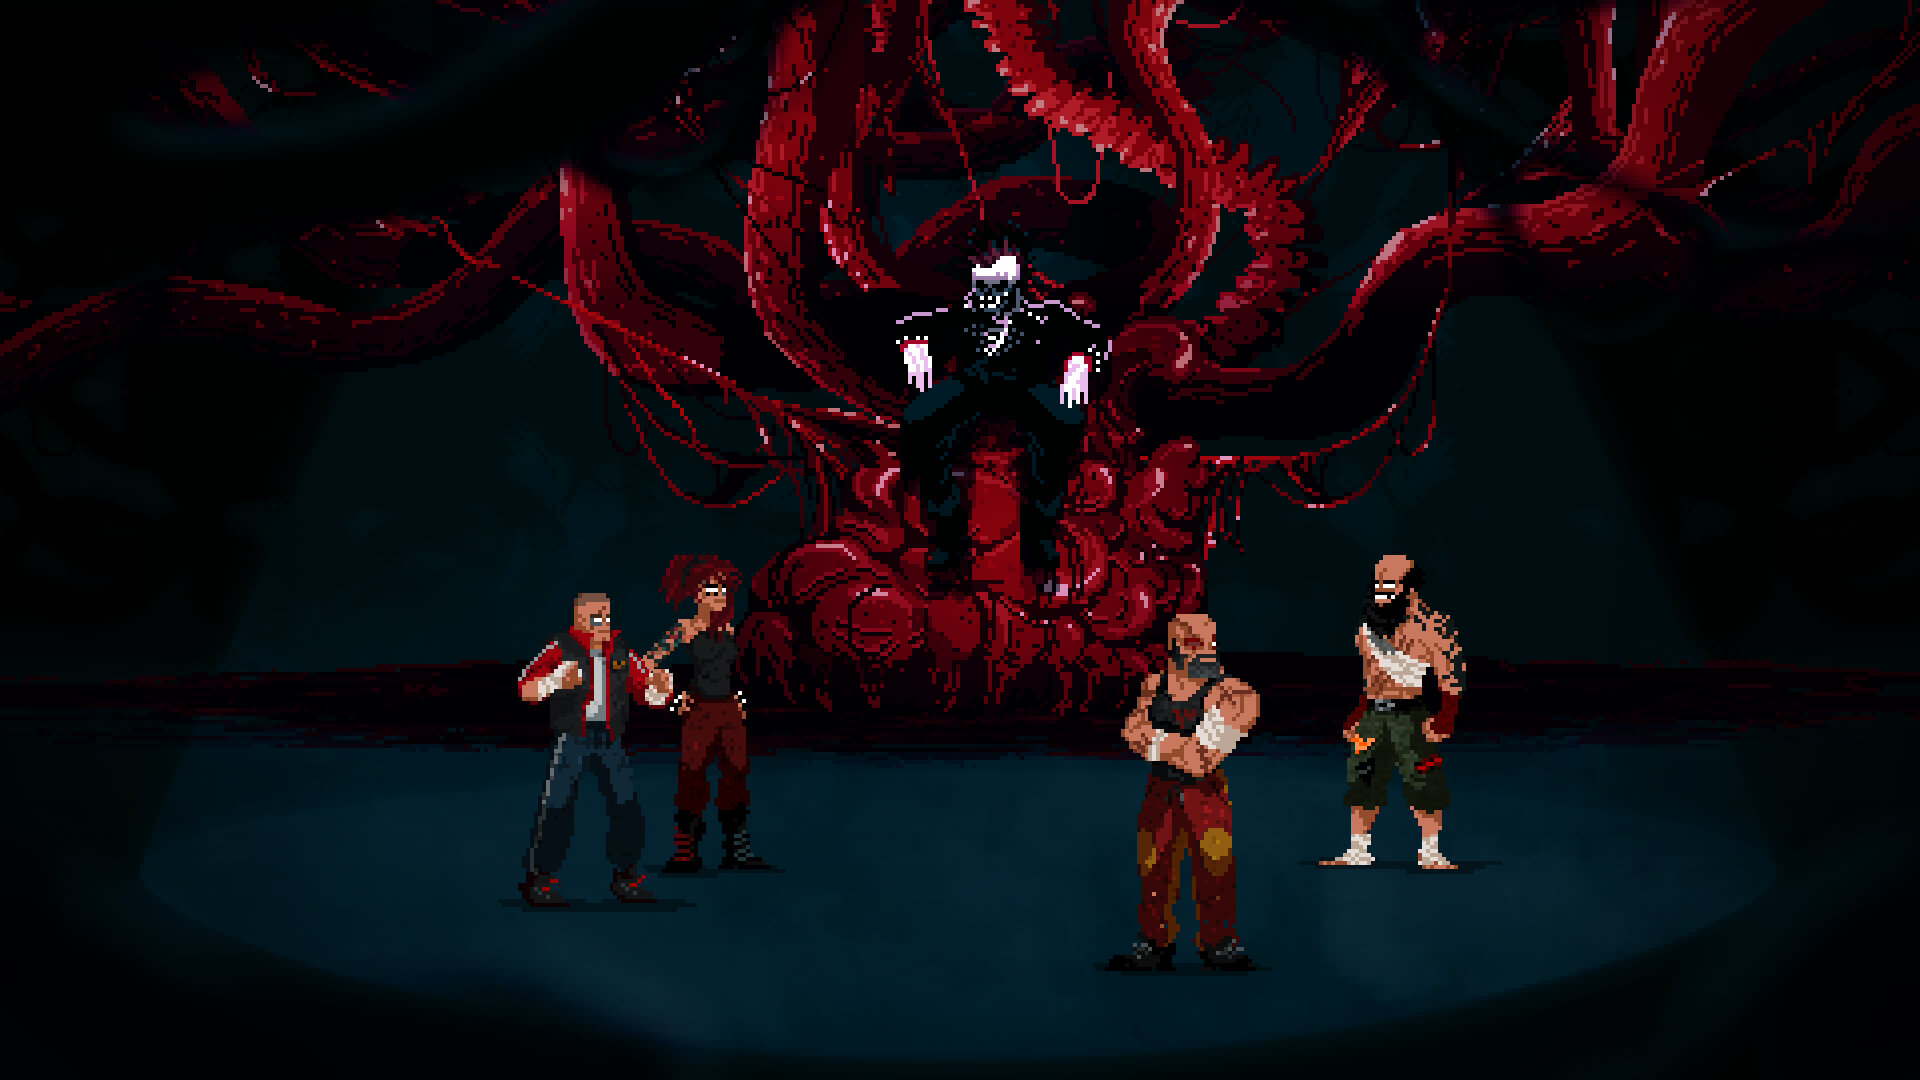 mother russia bleeds11 1 - Gore-soaked Beat 'Em Up Mother Russia Bleeds Pounds its Way onto Steam